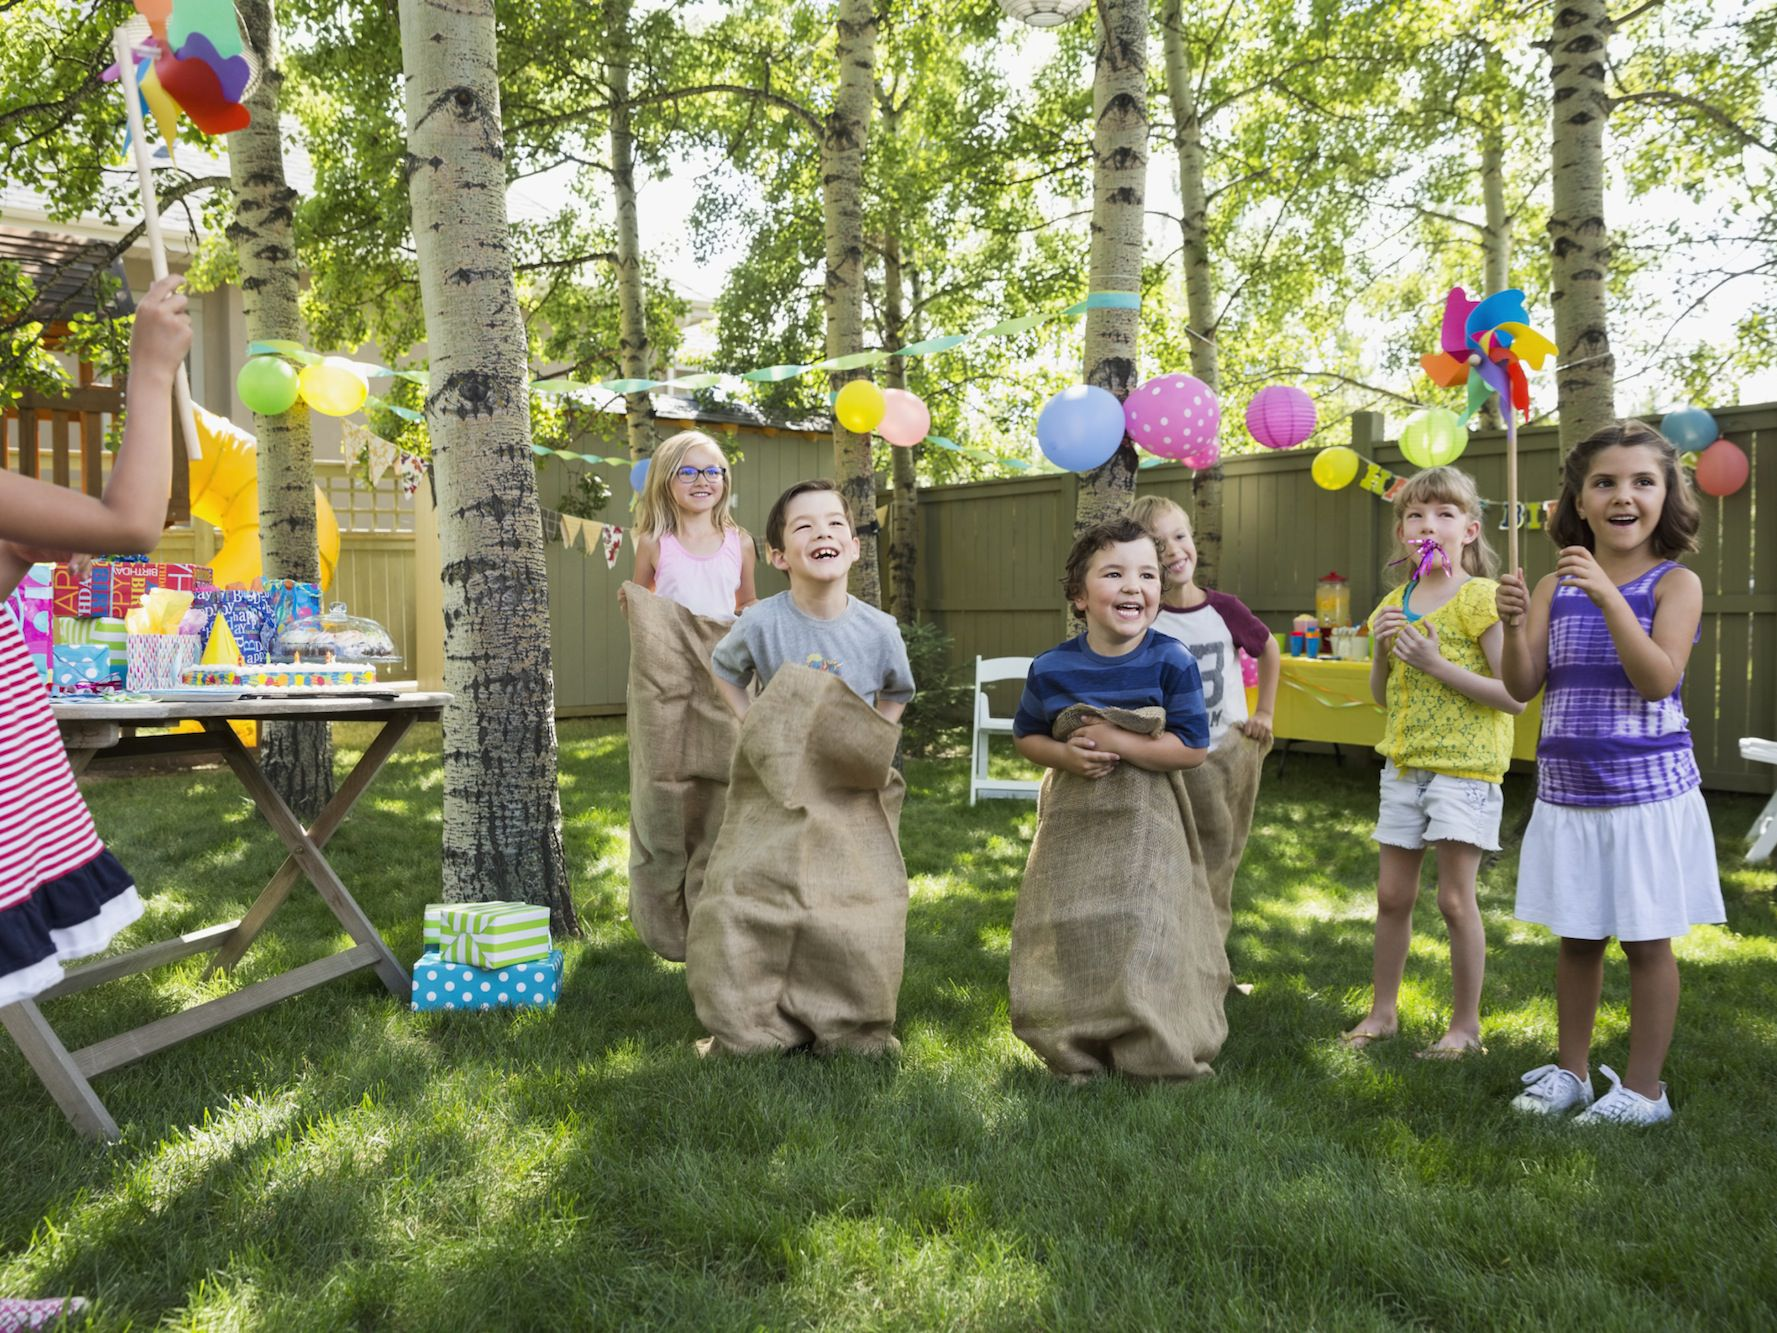 Plan Outdoor Obstacle Games For A Kids Birthday Party